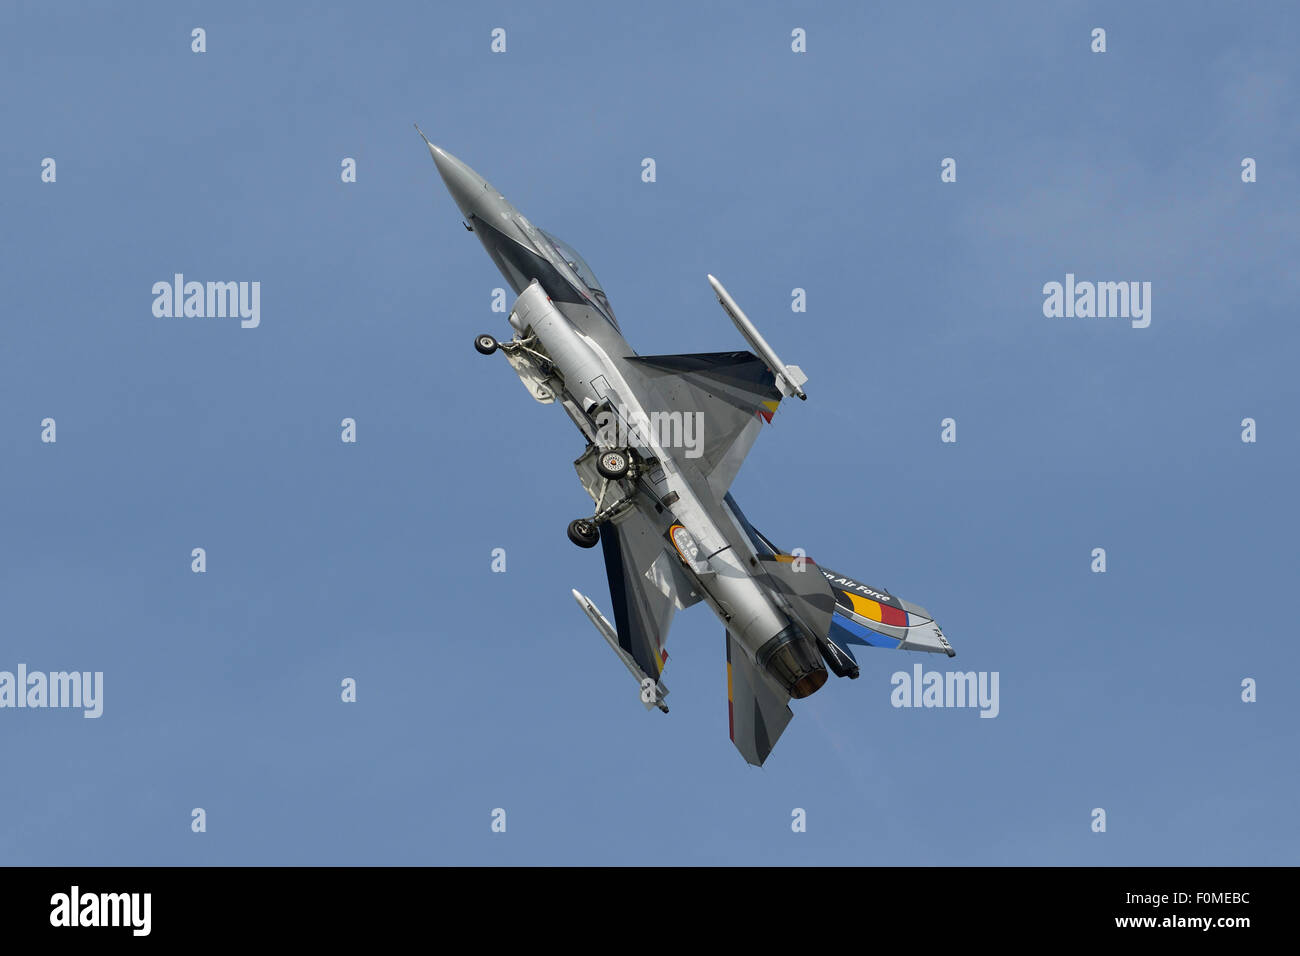 Belguim Air Force General Dynamics F-16A starting to climb with landing gear still down - Stock Image